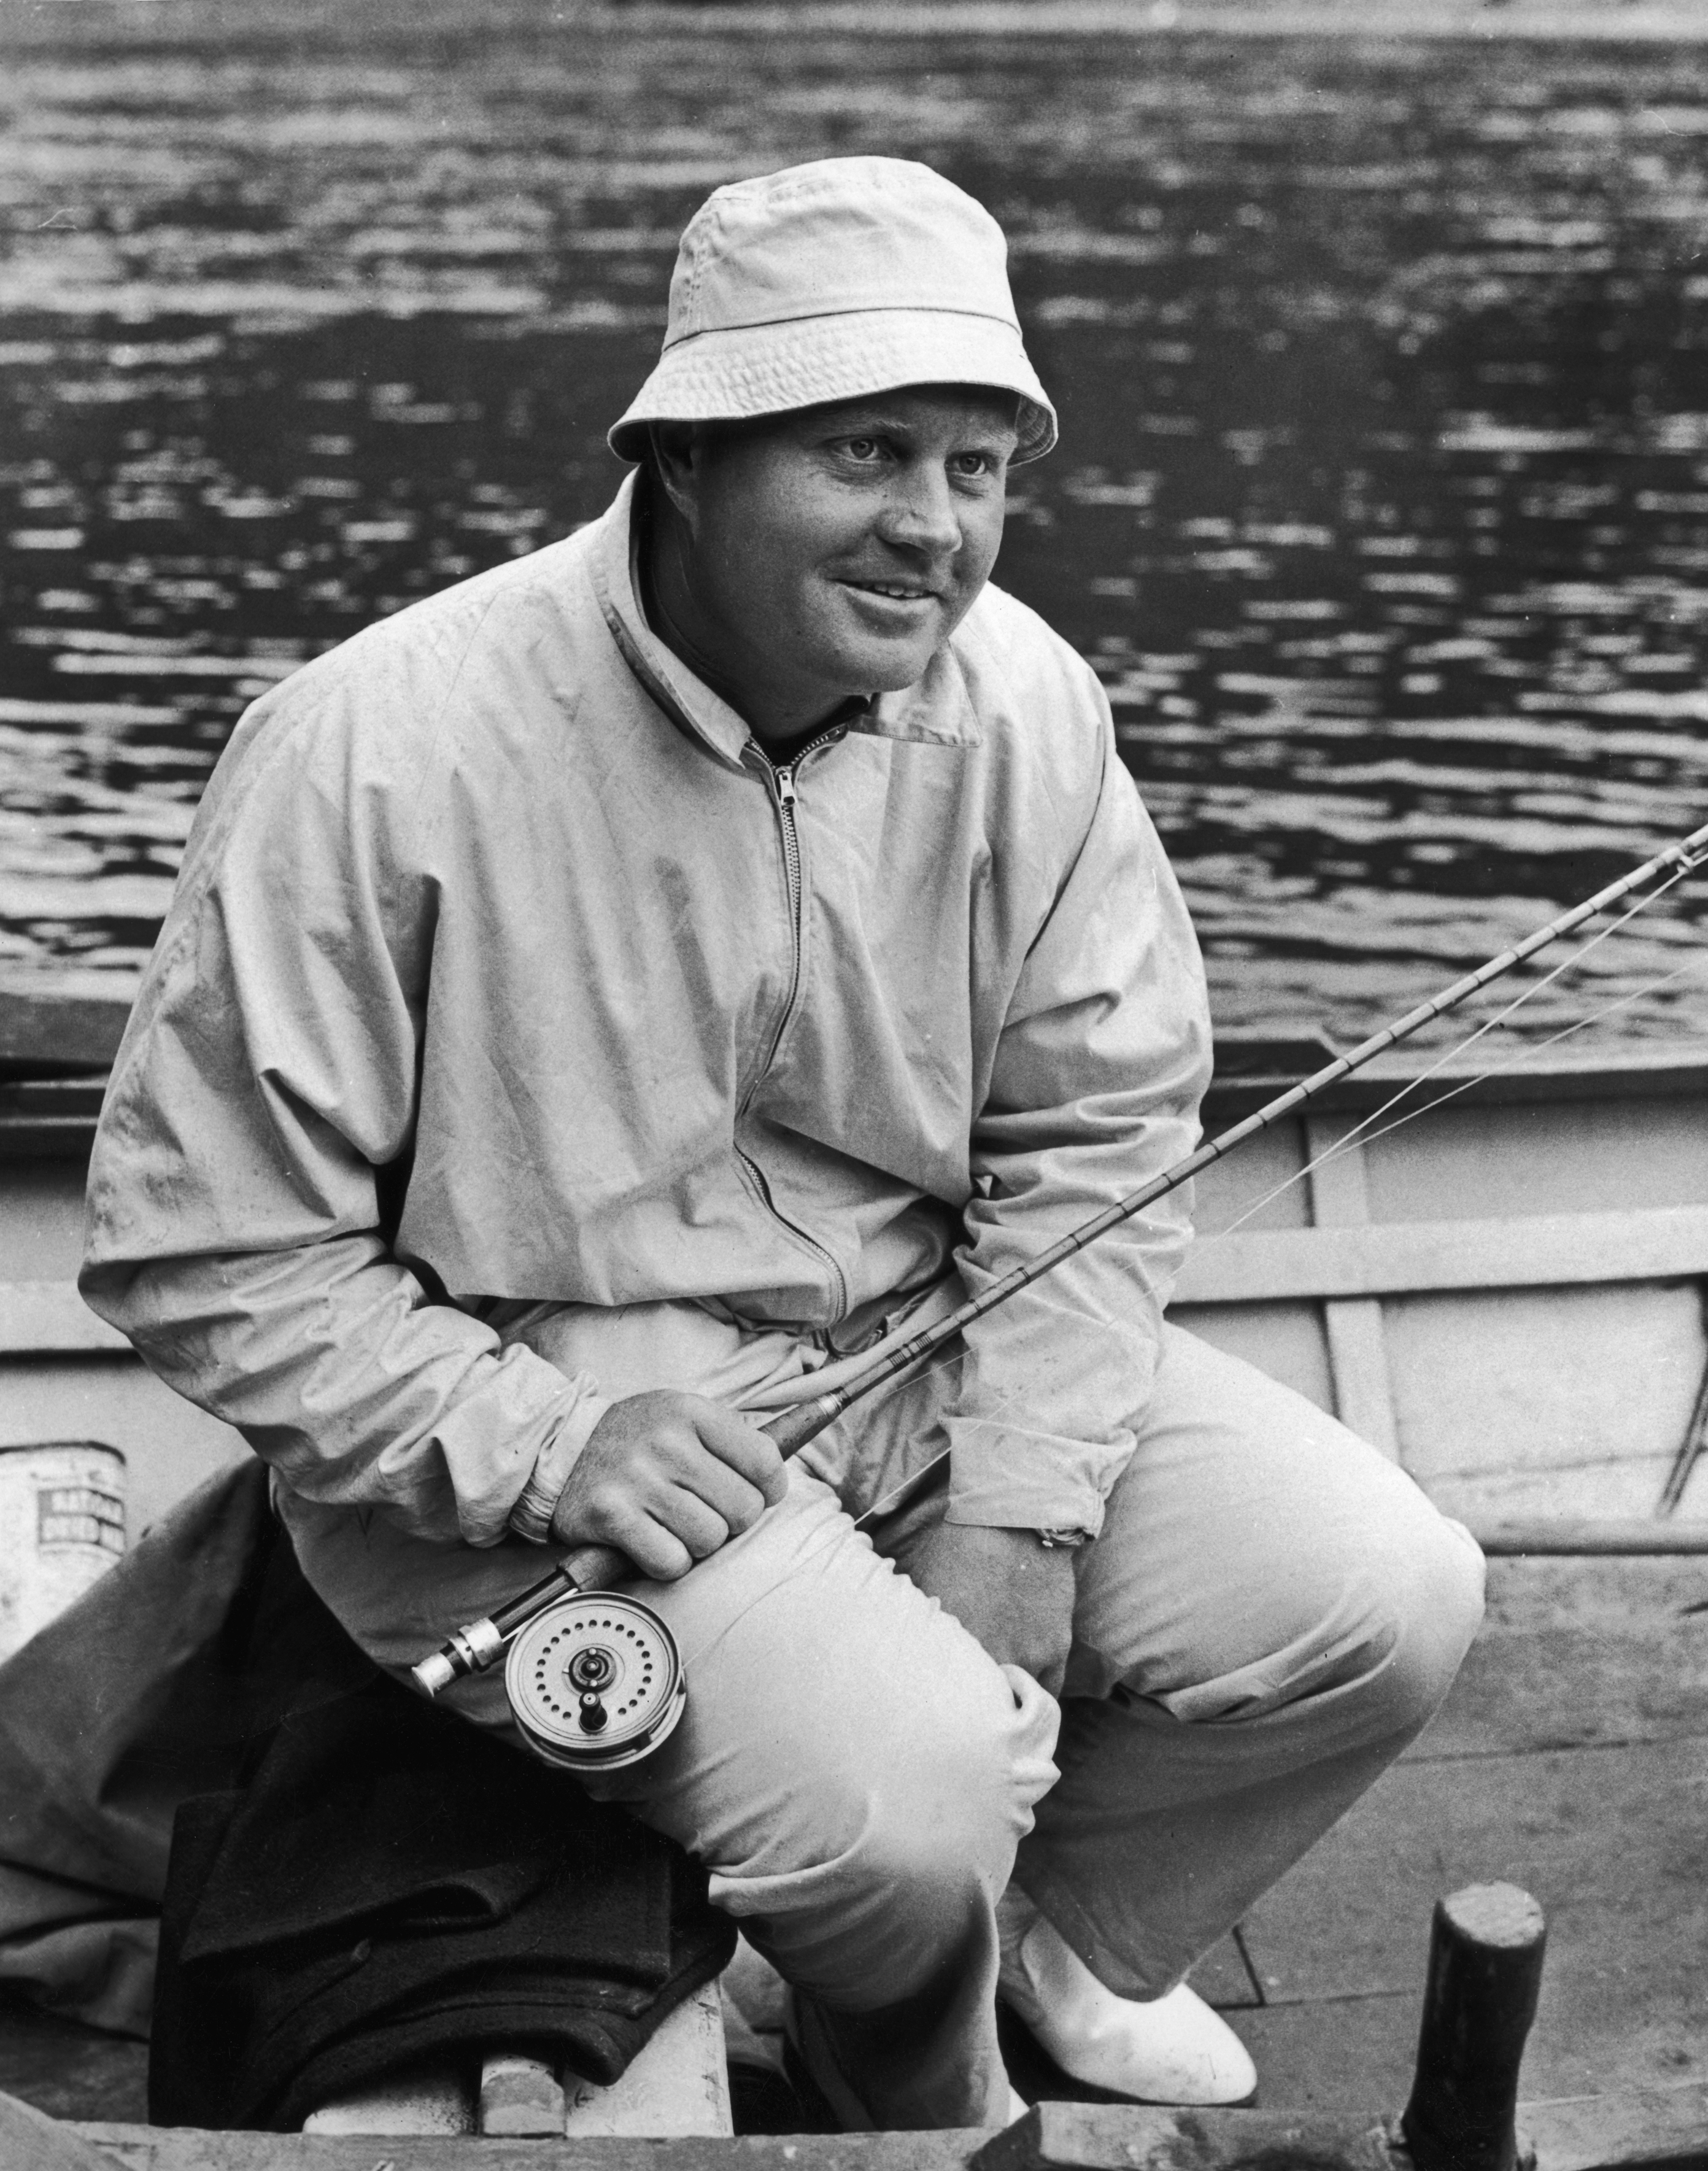 American golfer Jack Nicklaus tries his hand at fishing on the Birnam Hotel stretch of the River Tay, near Dunkeld in Perthshire, Scotland, in 1968.